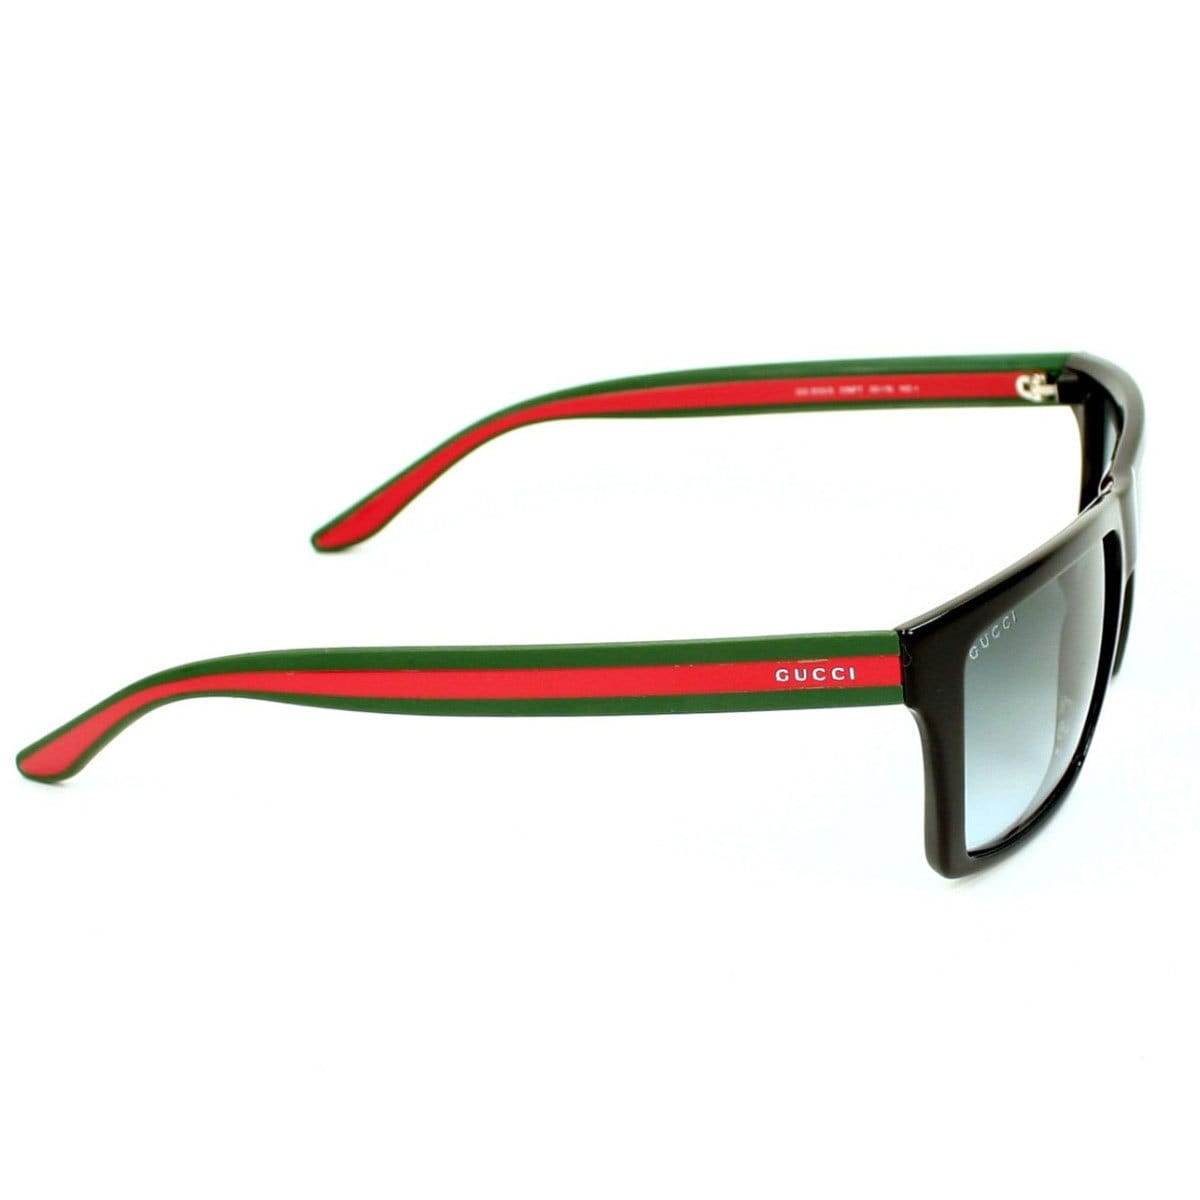 87285d314a7 Shop Gucci Men s GG 1013 S Rectangular Sunglasses - Black - Large - Free  Shipping Today - Overstock - 10168200